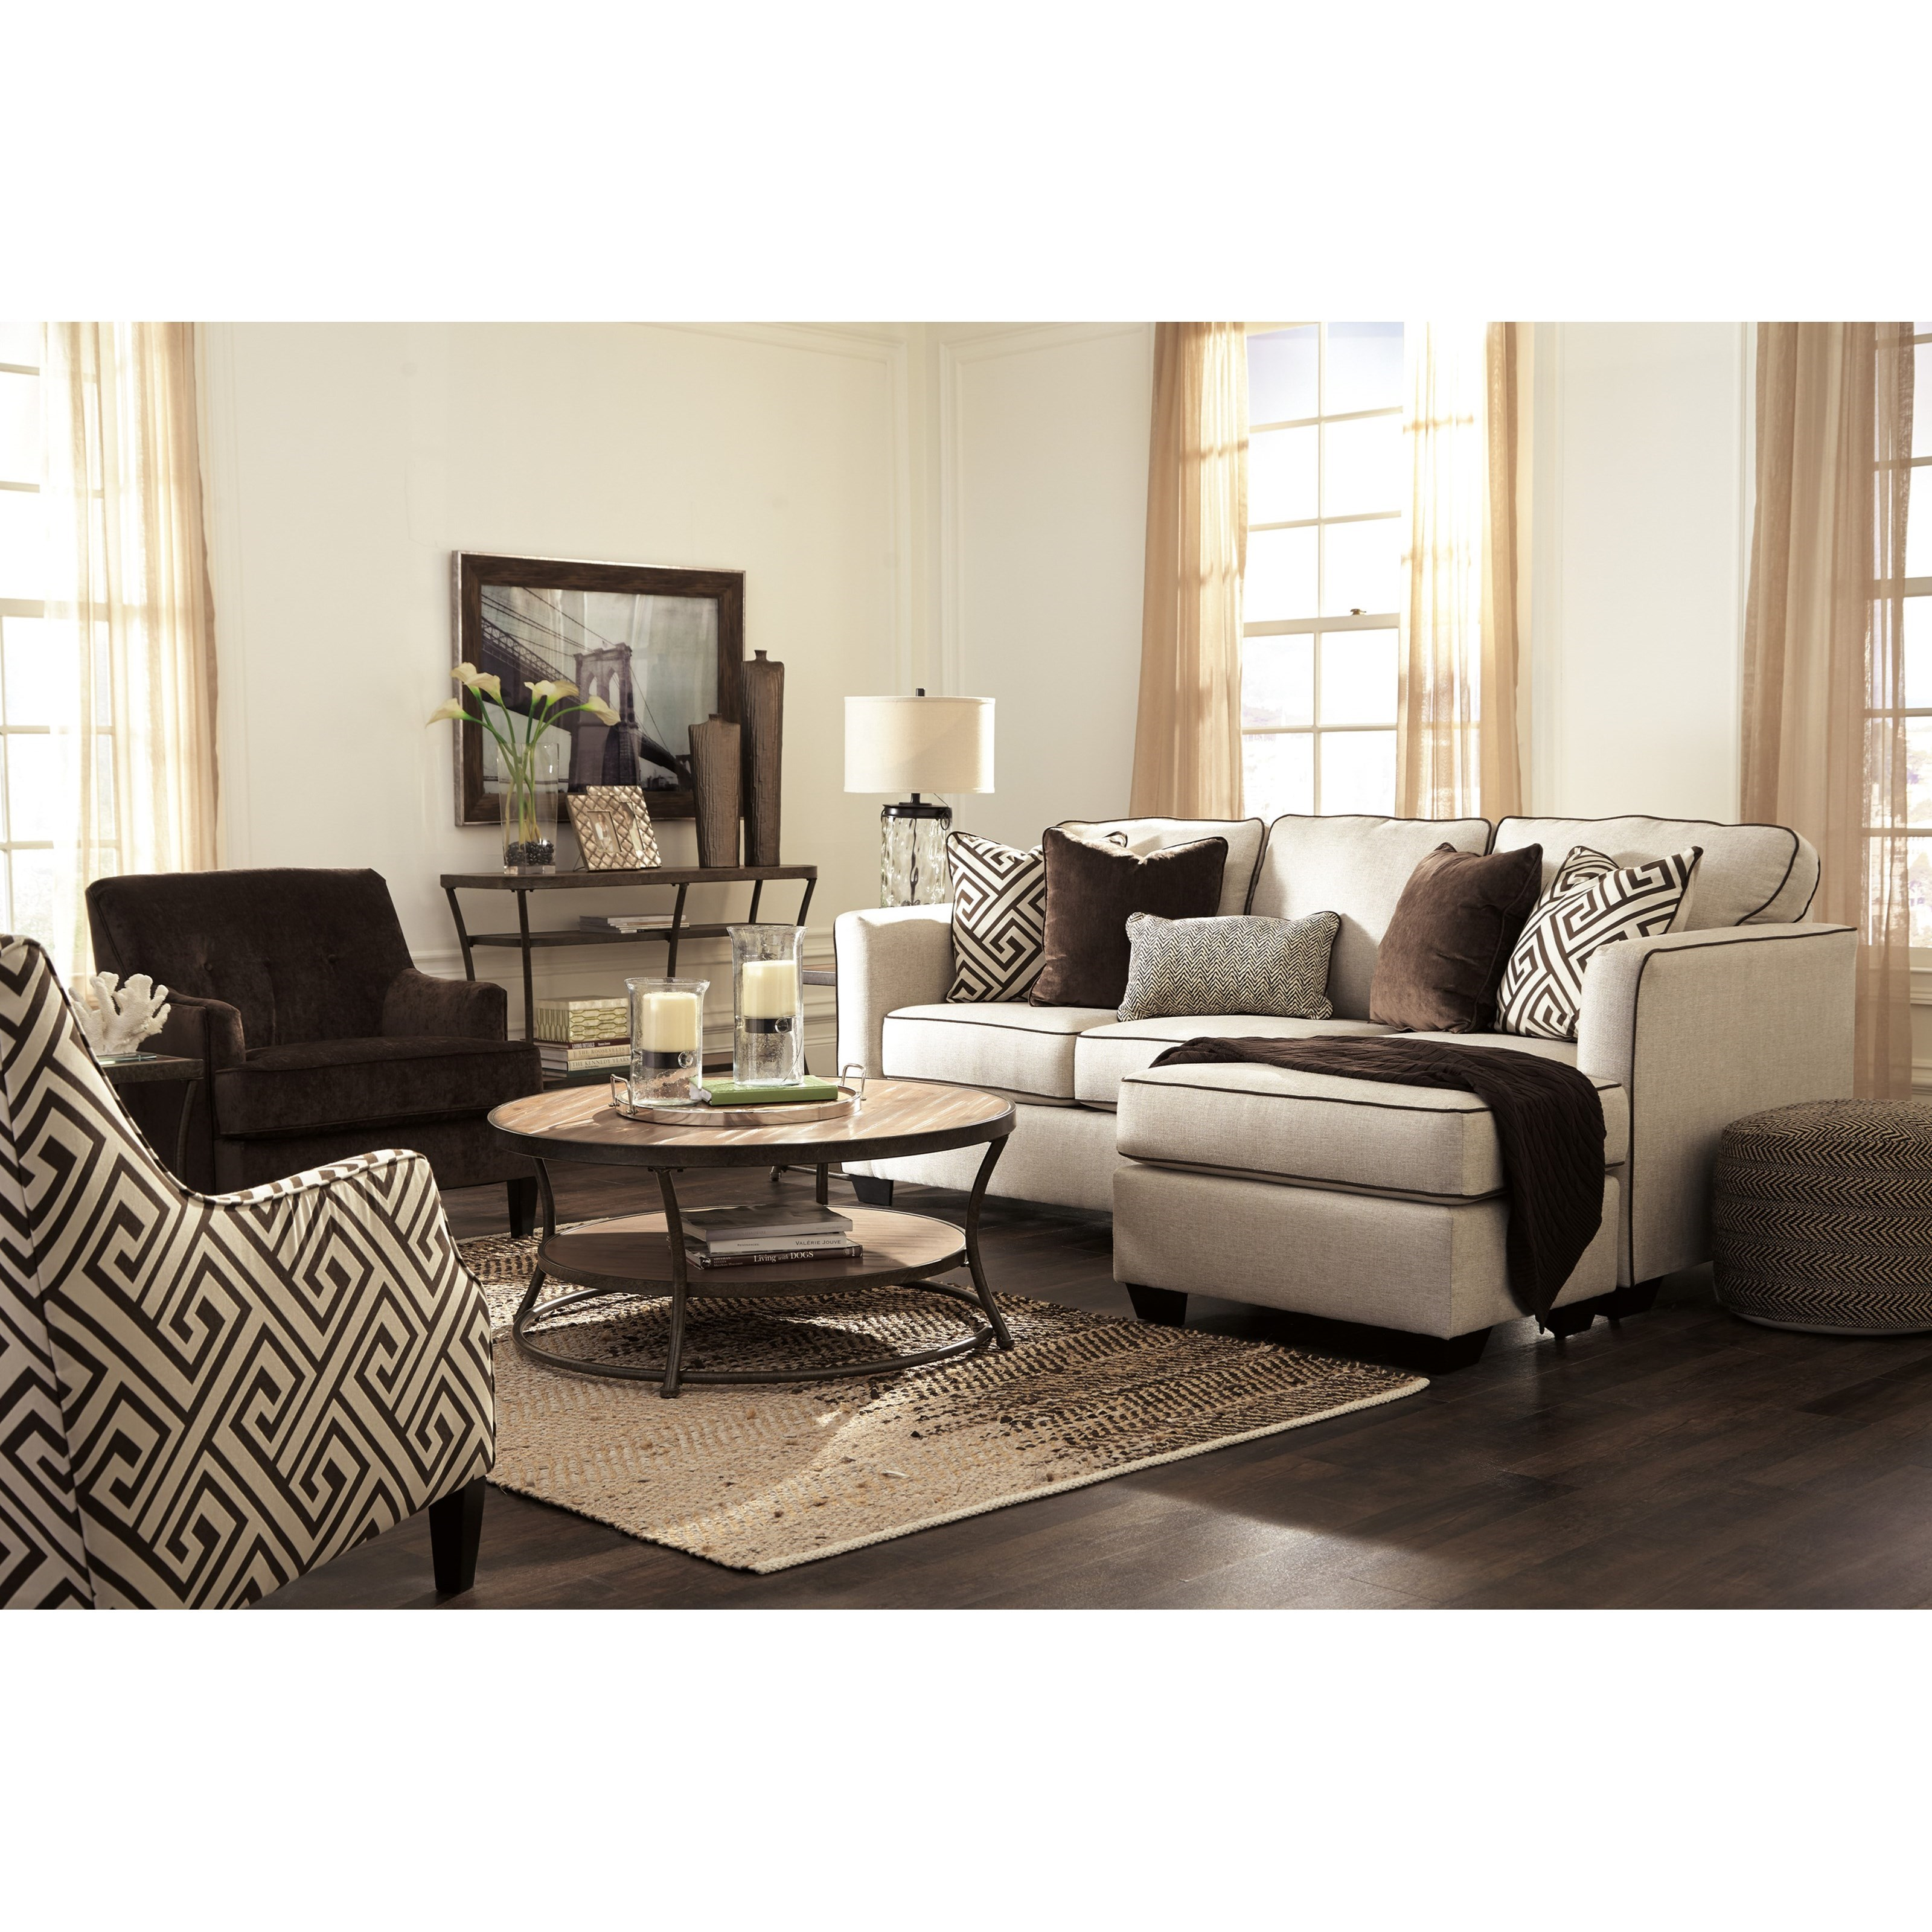 Benchcraft carlinworth contemporary sofa chaise with for Benchcraft chaise lounge